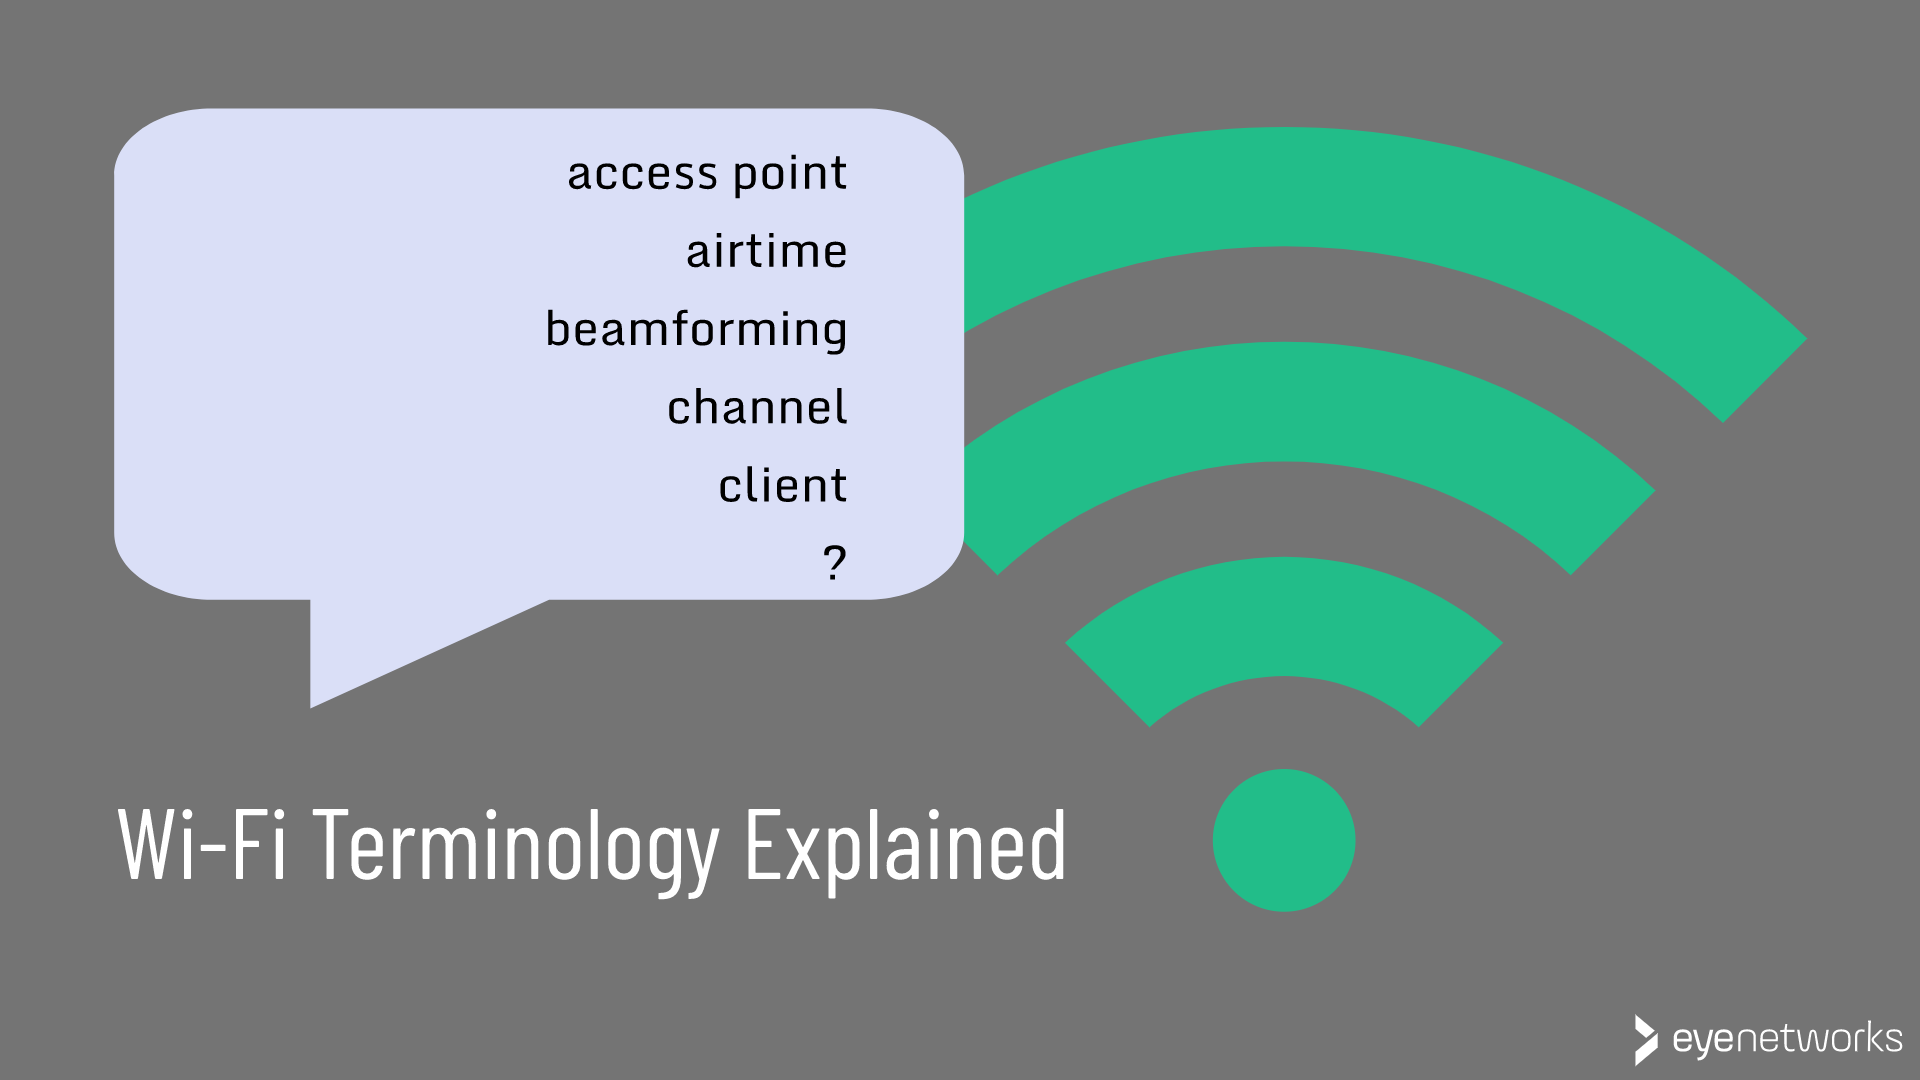 Wireless Terms: Wi-Fi Terminology and Acronyms Explained